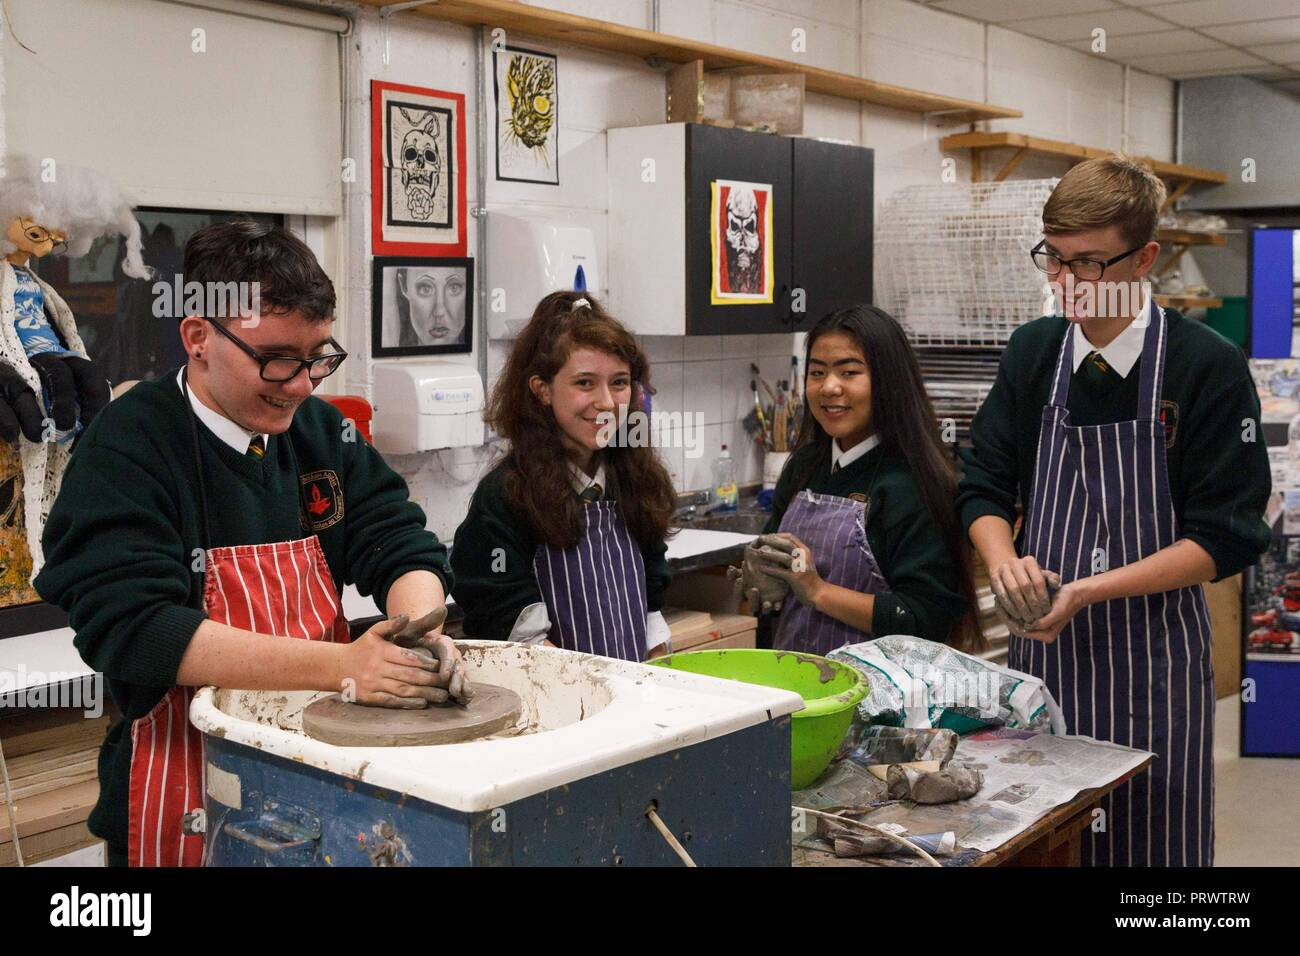 Cork, Ireland. 4th Oct, 2018.   St Aidans Open Night, Cork City. Pictured here (LtoR) is Paul O Mahony, Lauren Mc Carthy, Niamh Mulcahy and Kyle O Connell in the art room. At 7pm this evening St Aidans Community College, Dublin Hill opened its door to give potential students and their families a glimpse into life in St Aidans. Parents and incoming students had a chance to see the various departments throughout the school which opened their doors to show what they had to offer the incoming students. Credit: Damian Coleman/ Alamy Live News. - Stock Image